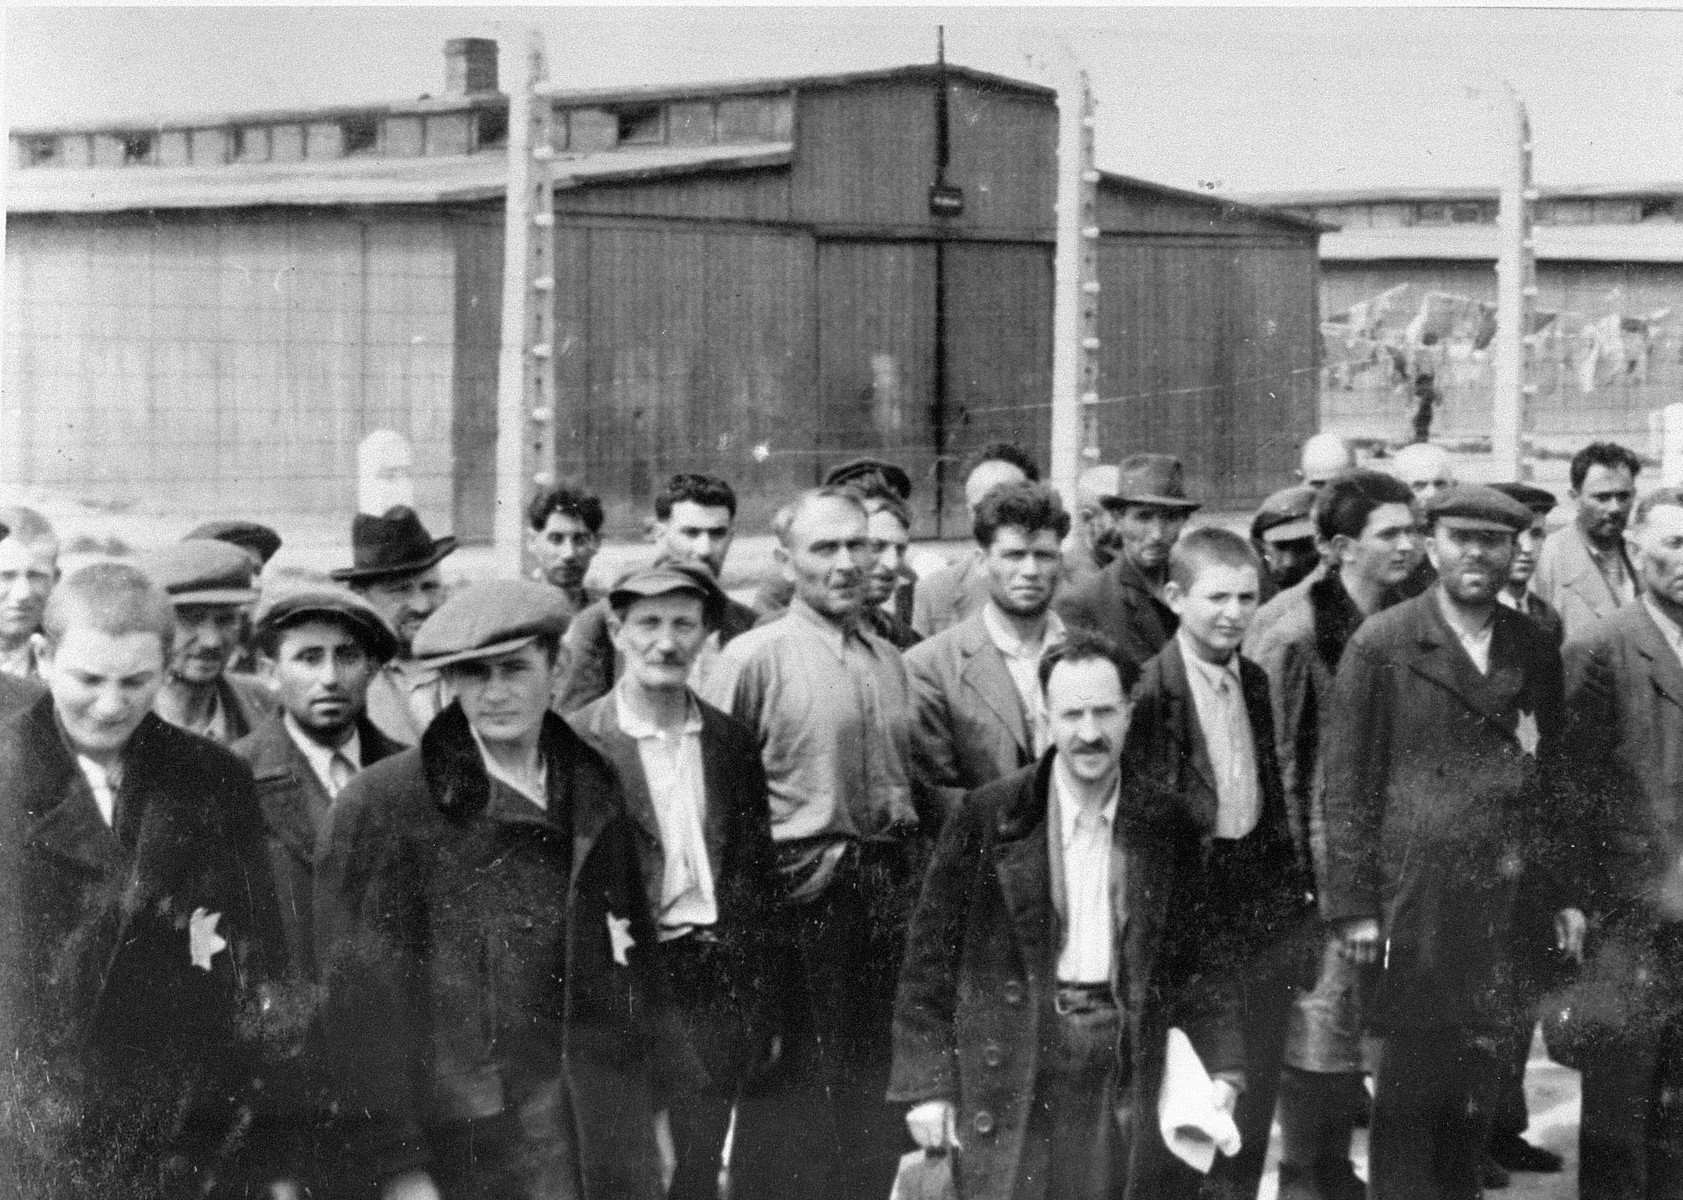 Jews from Subcarpathian Rus who have been selected for forced labor at Auschwitz-Birkenau are assembled in front of a barracks.